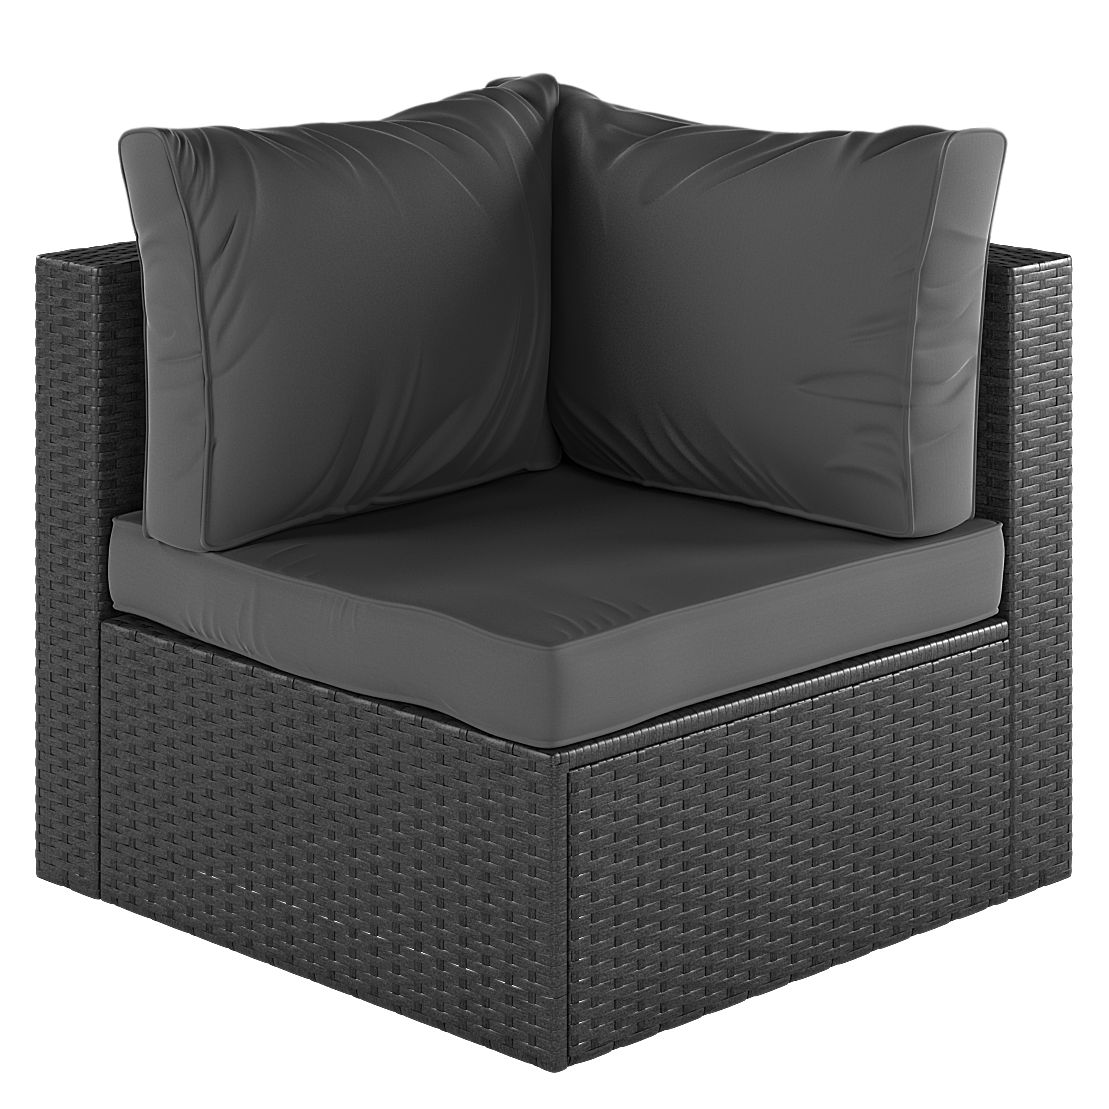 Fauteuil d'angle lounge Paradise Lounge